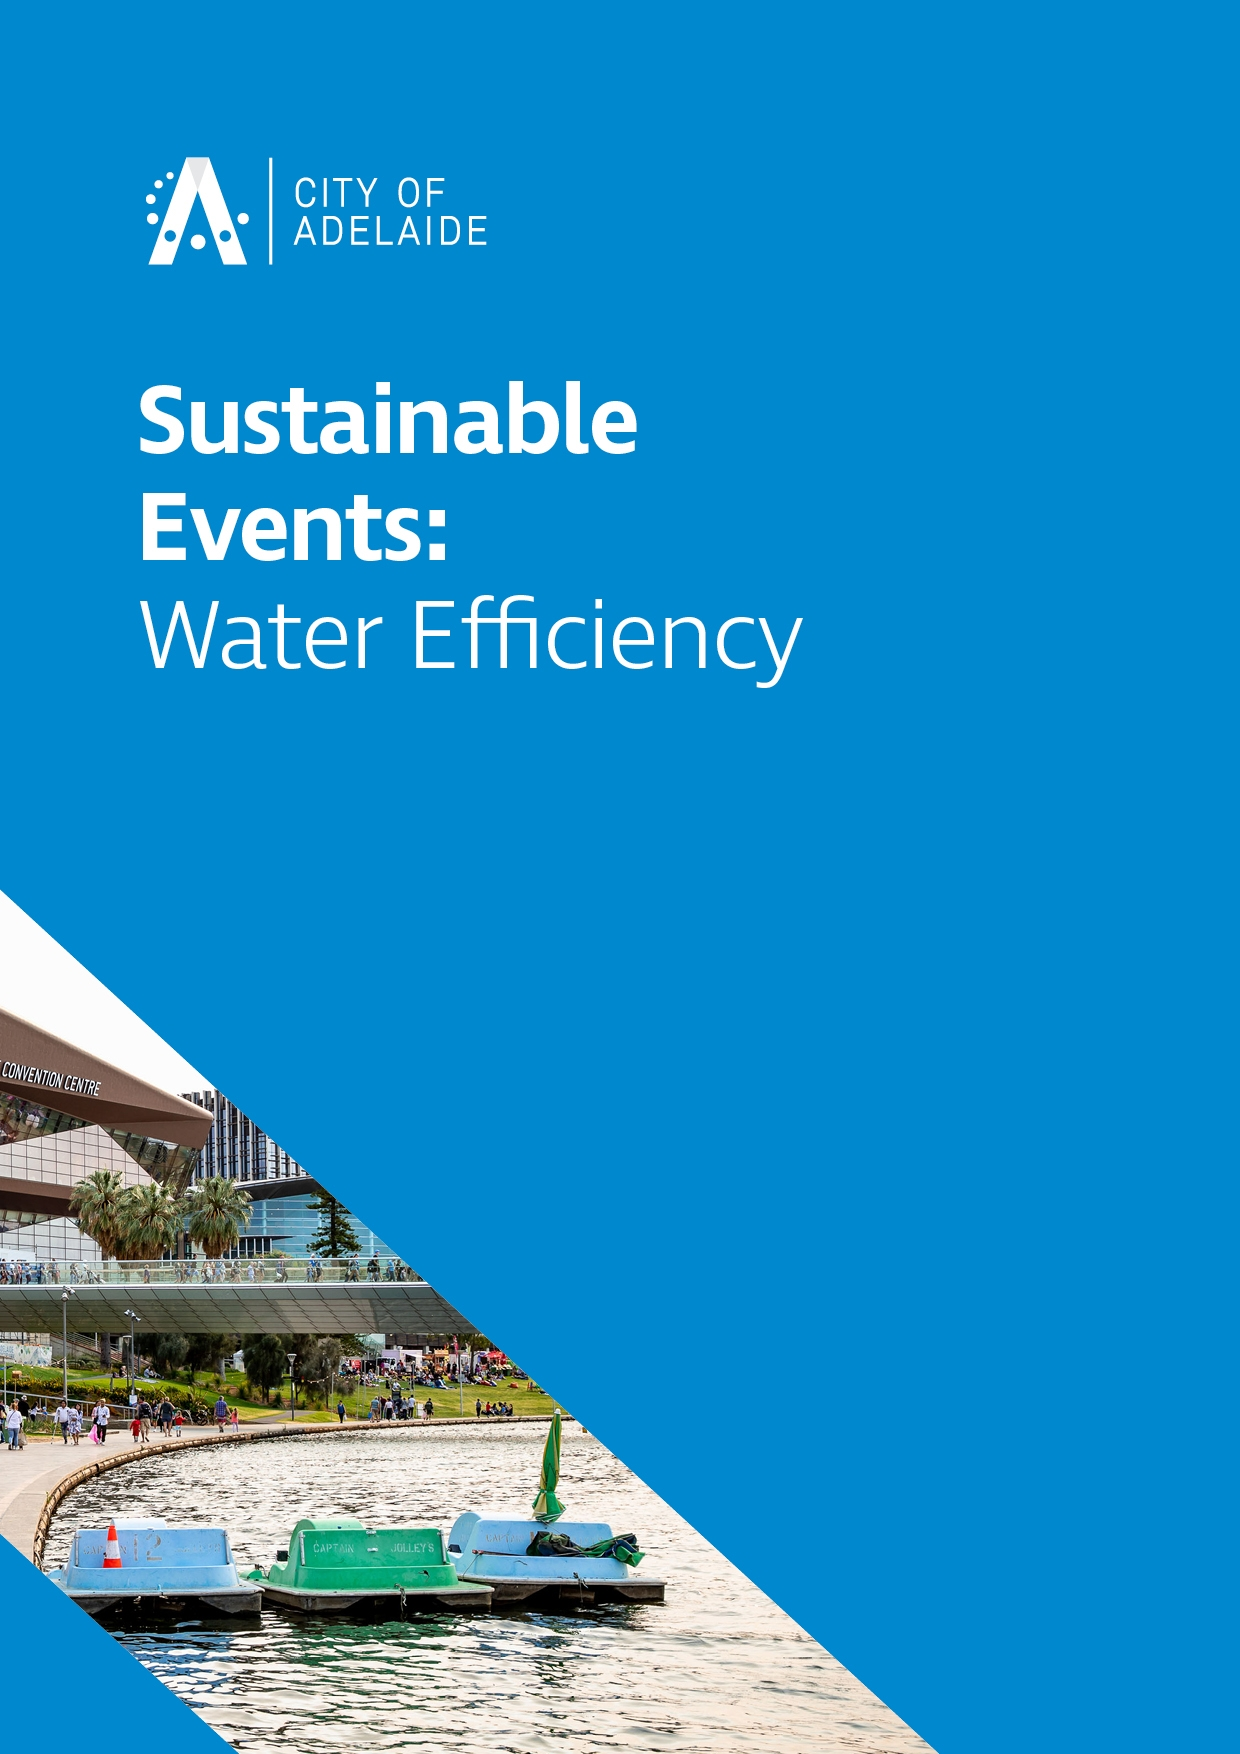 Thumbnail sustainable events checklists water efficiency